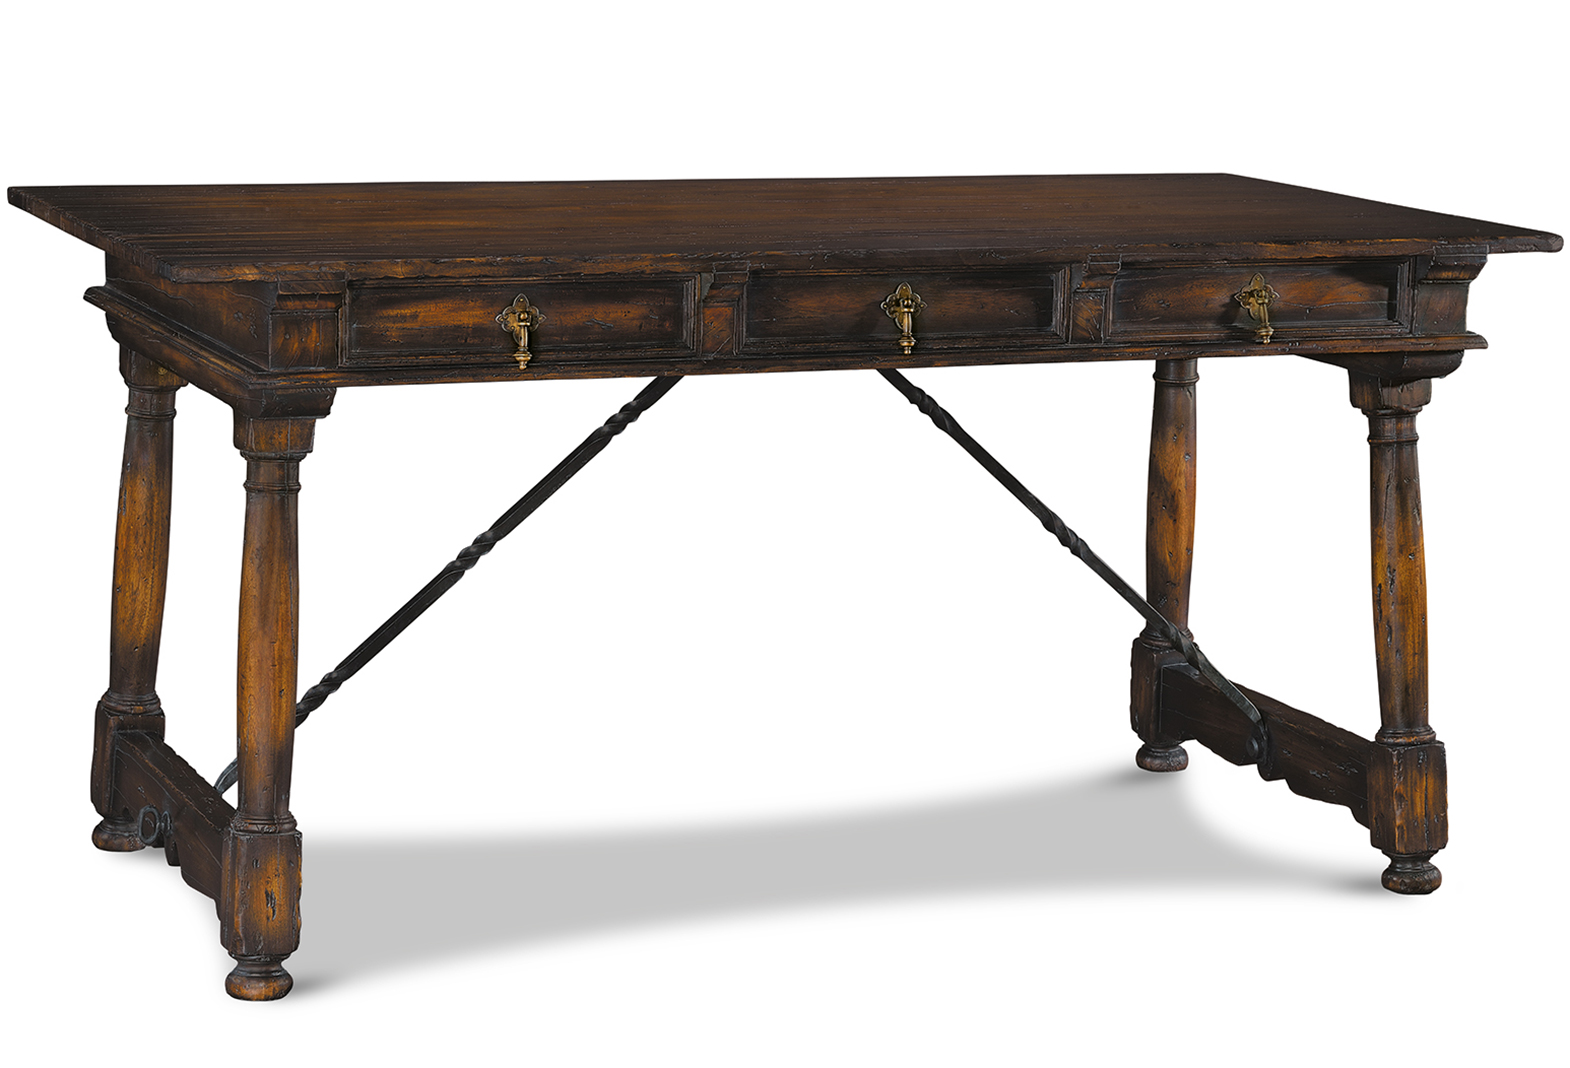 Antique Spanish Table Frasesdeconquistacom